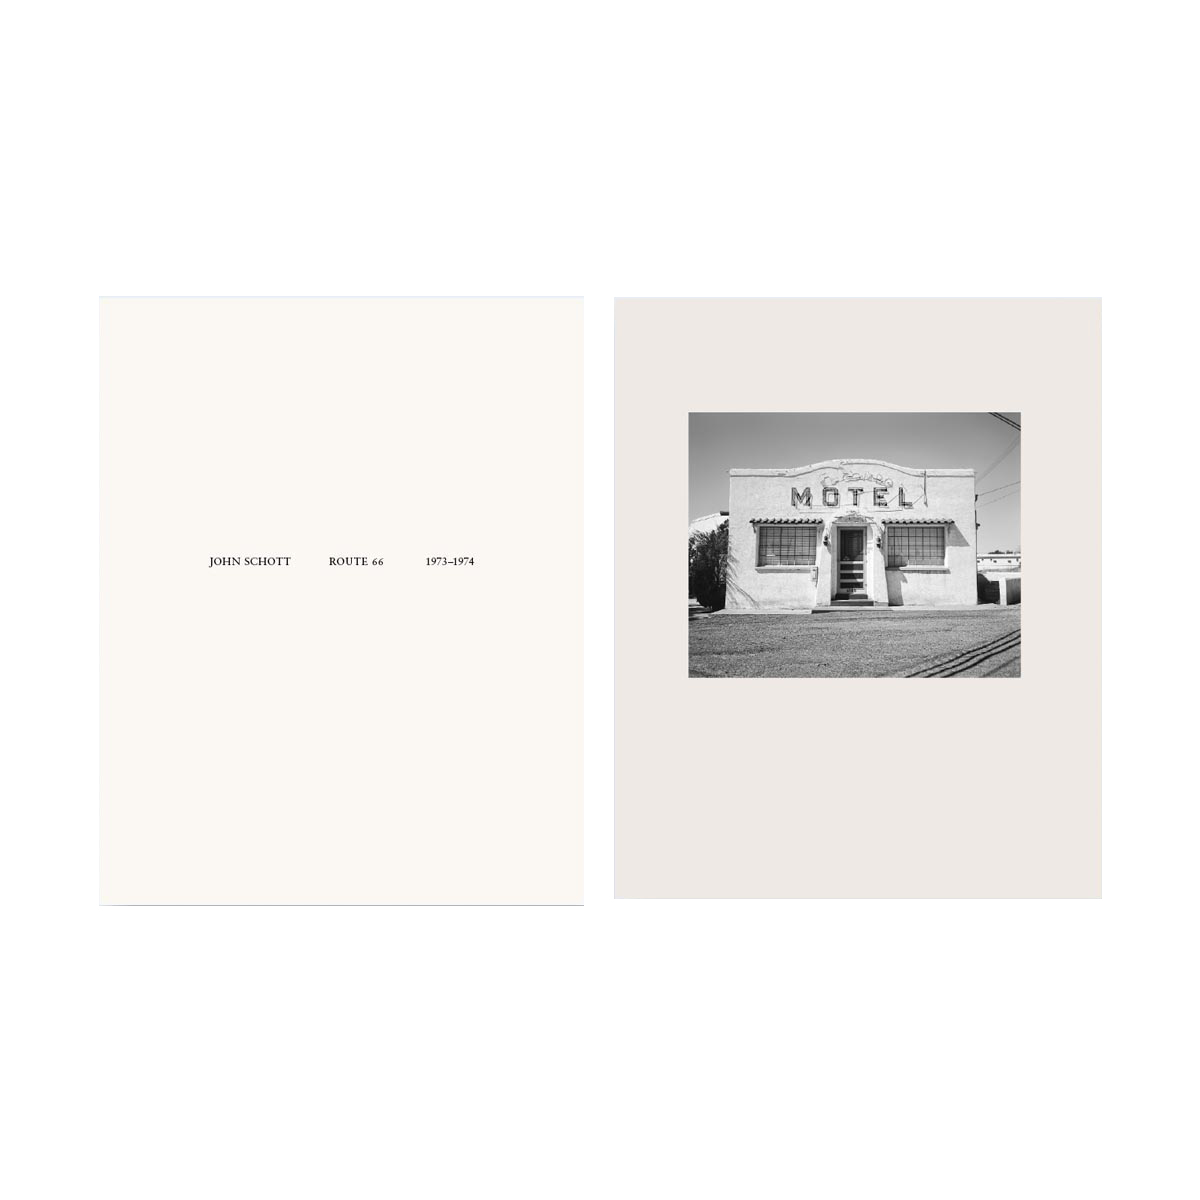 """NZ Library #1: John Schott: Route 66, Special Limited Edition (with Gelatin Silver Contact Print """"Untitled"""" from the Series """"Route 66 Motels,"""" Tipis with Television Antennas, Truck and Palm Trees) (NZ Library - Set One, Volume Six)"""